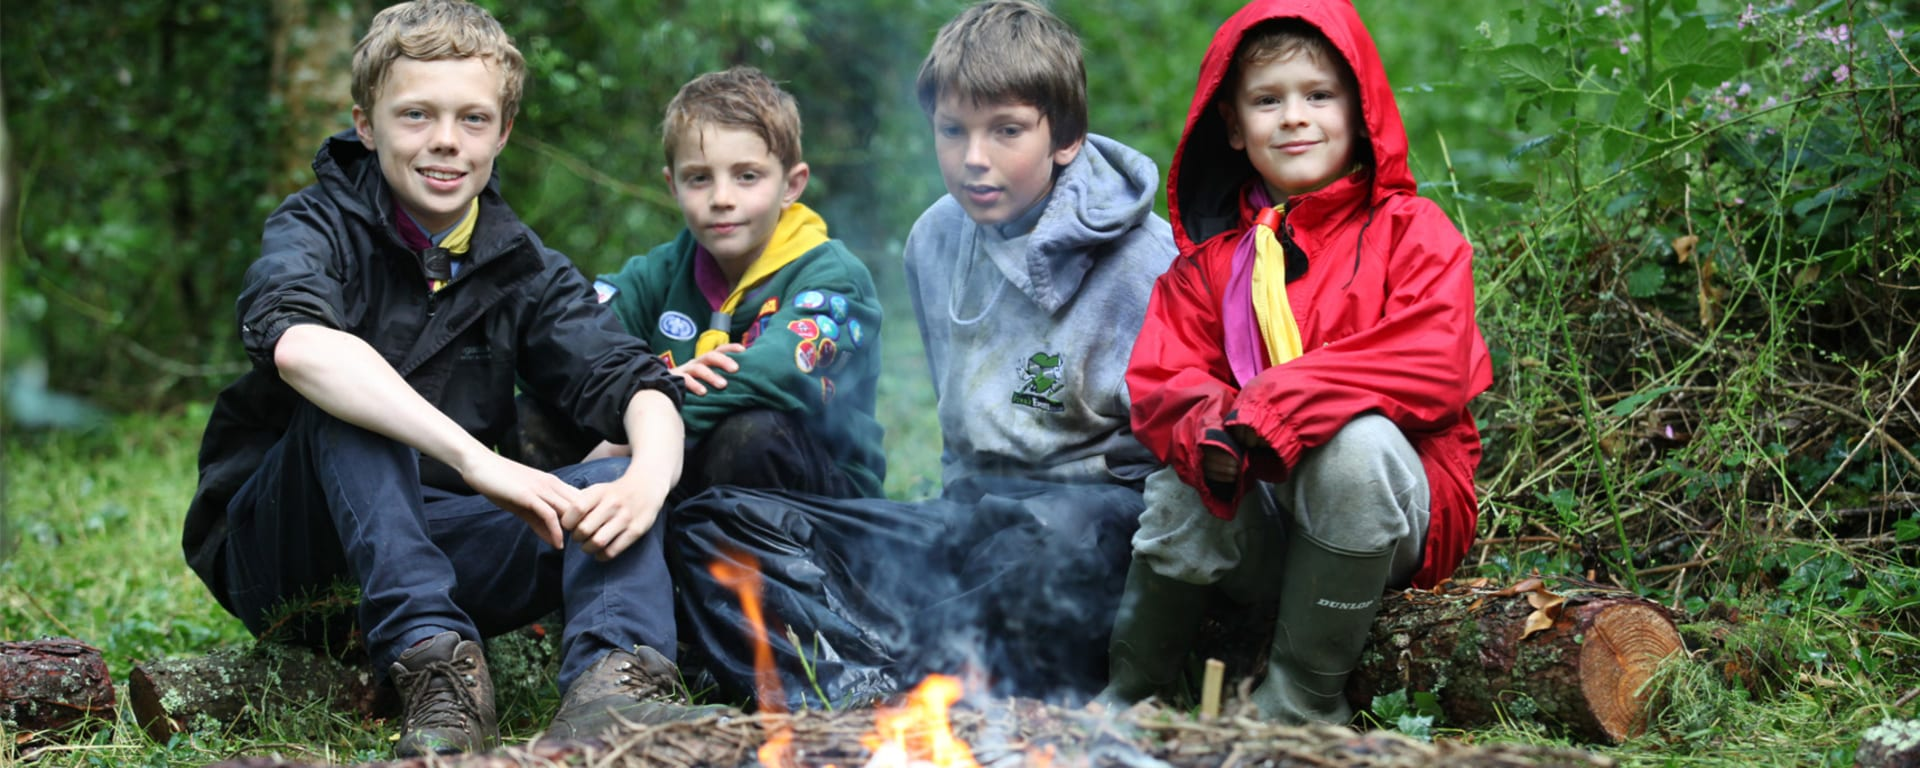 Scouts with bonfire